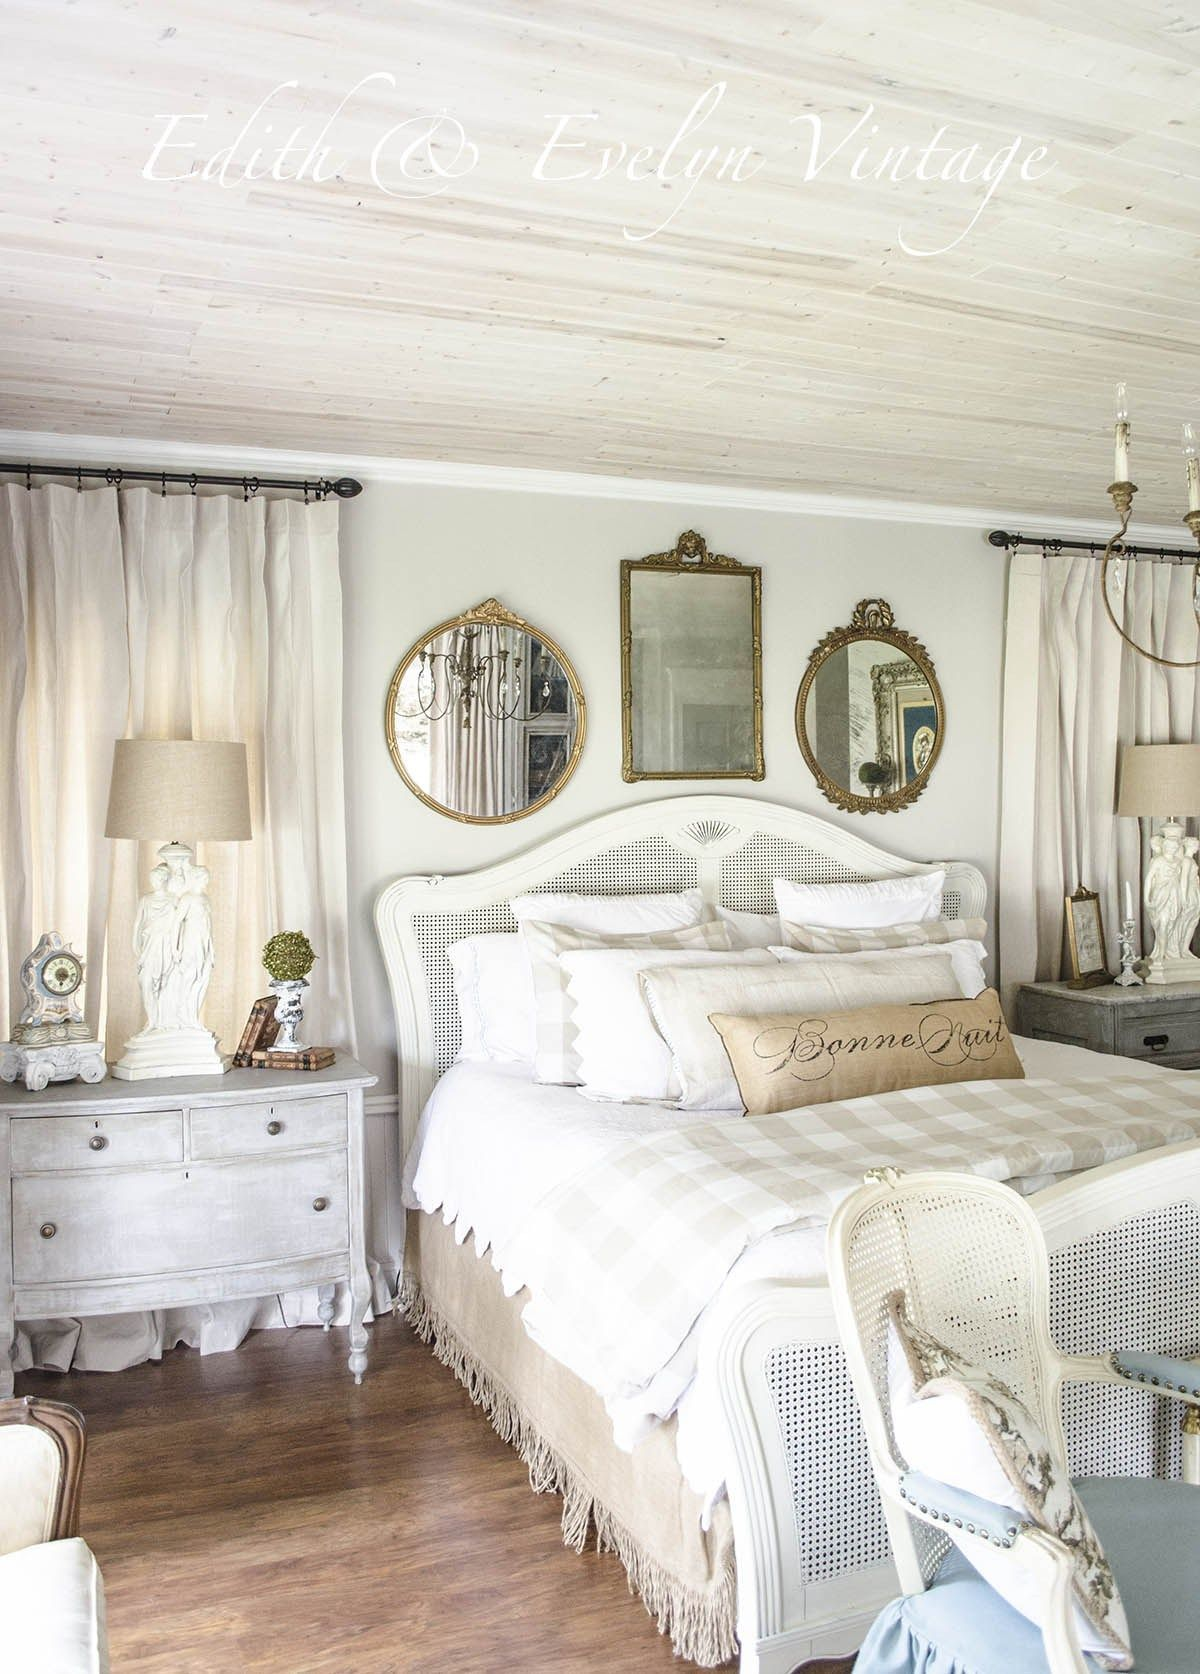 34 Amazing French Country Bedrooms Design Ideas With Images